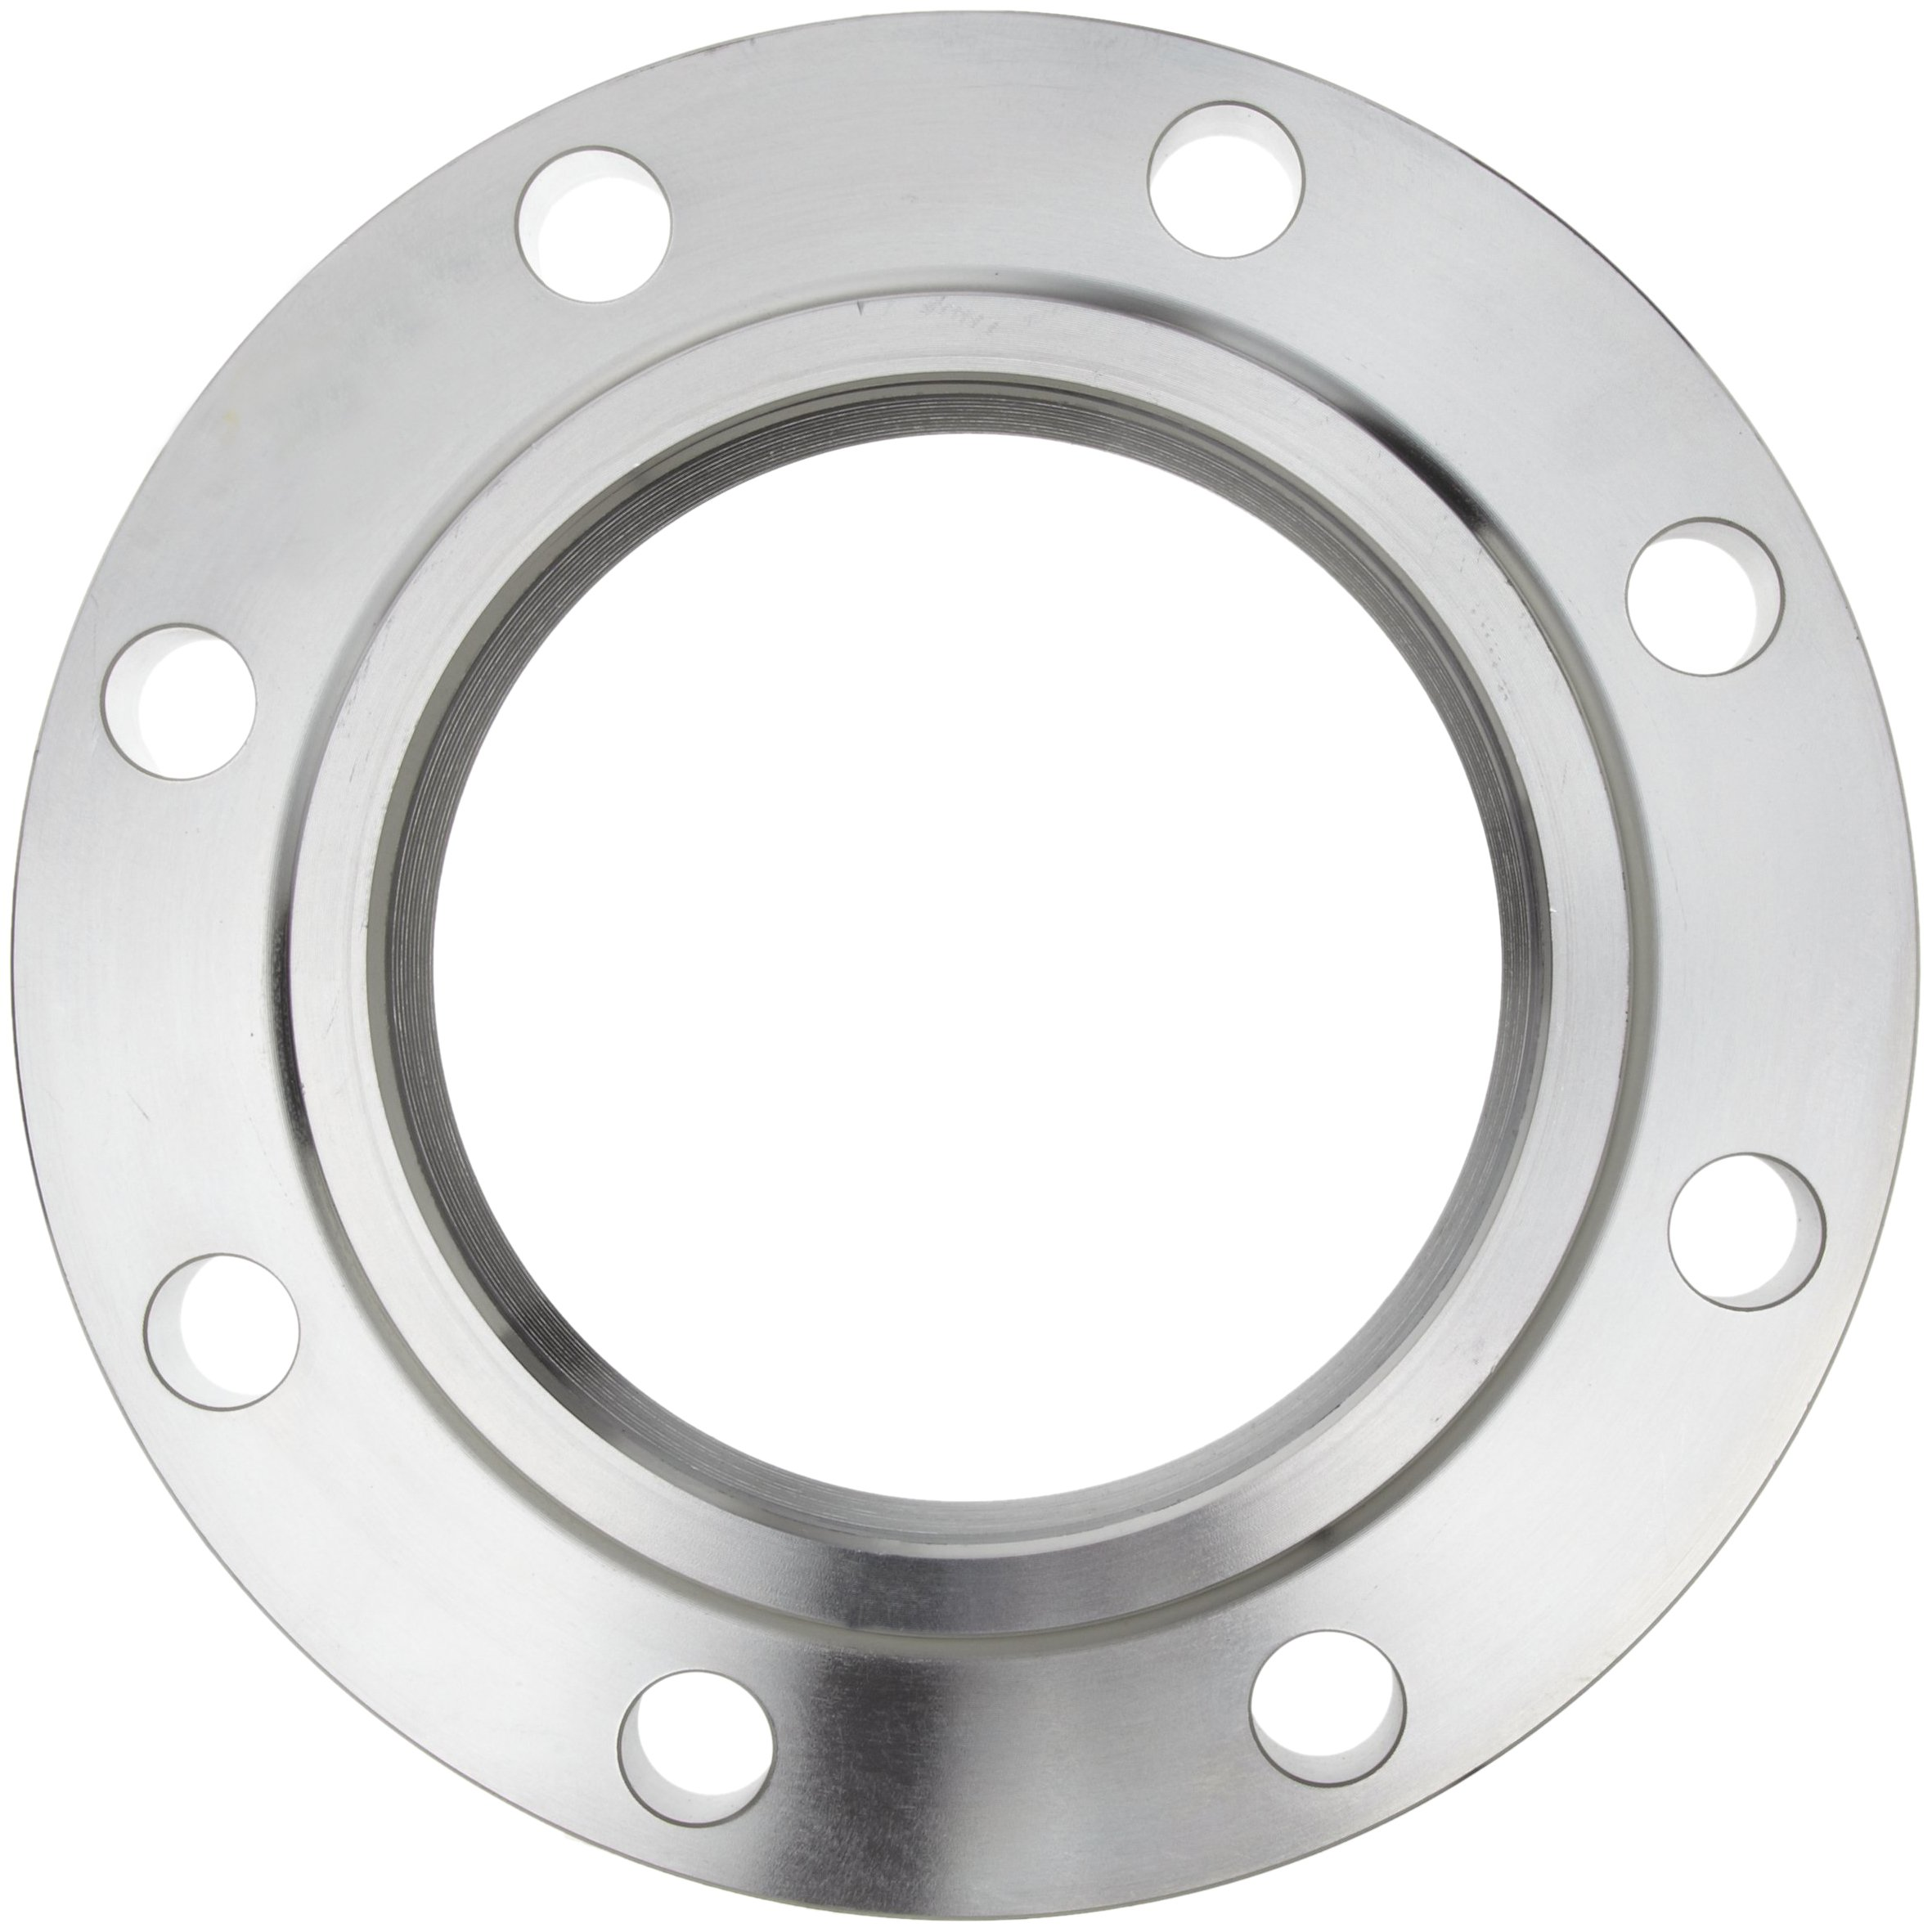 Aluminum pipe flange fittings